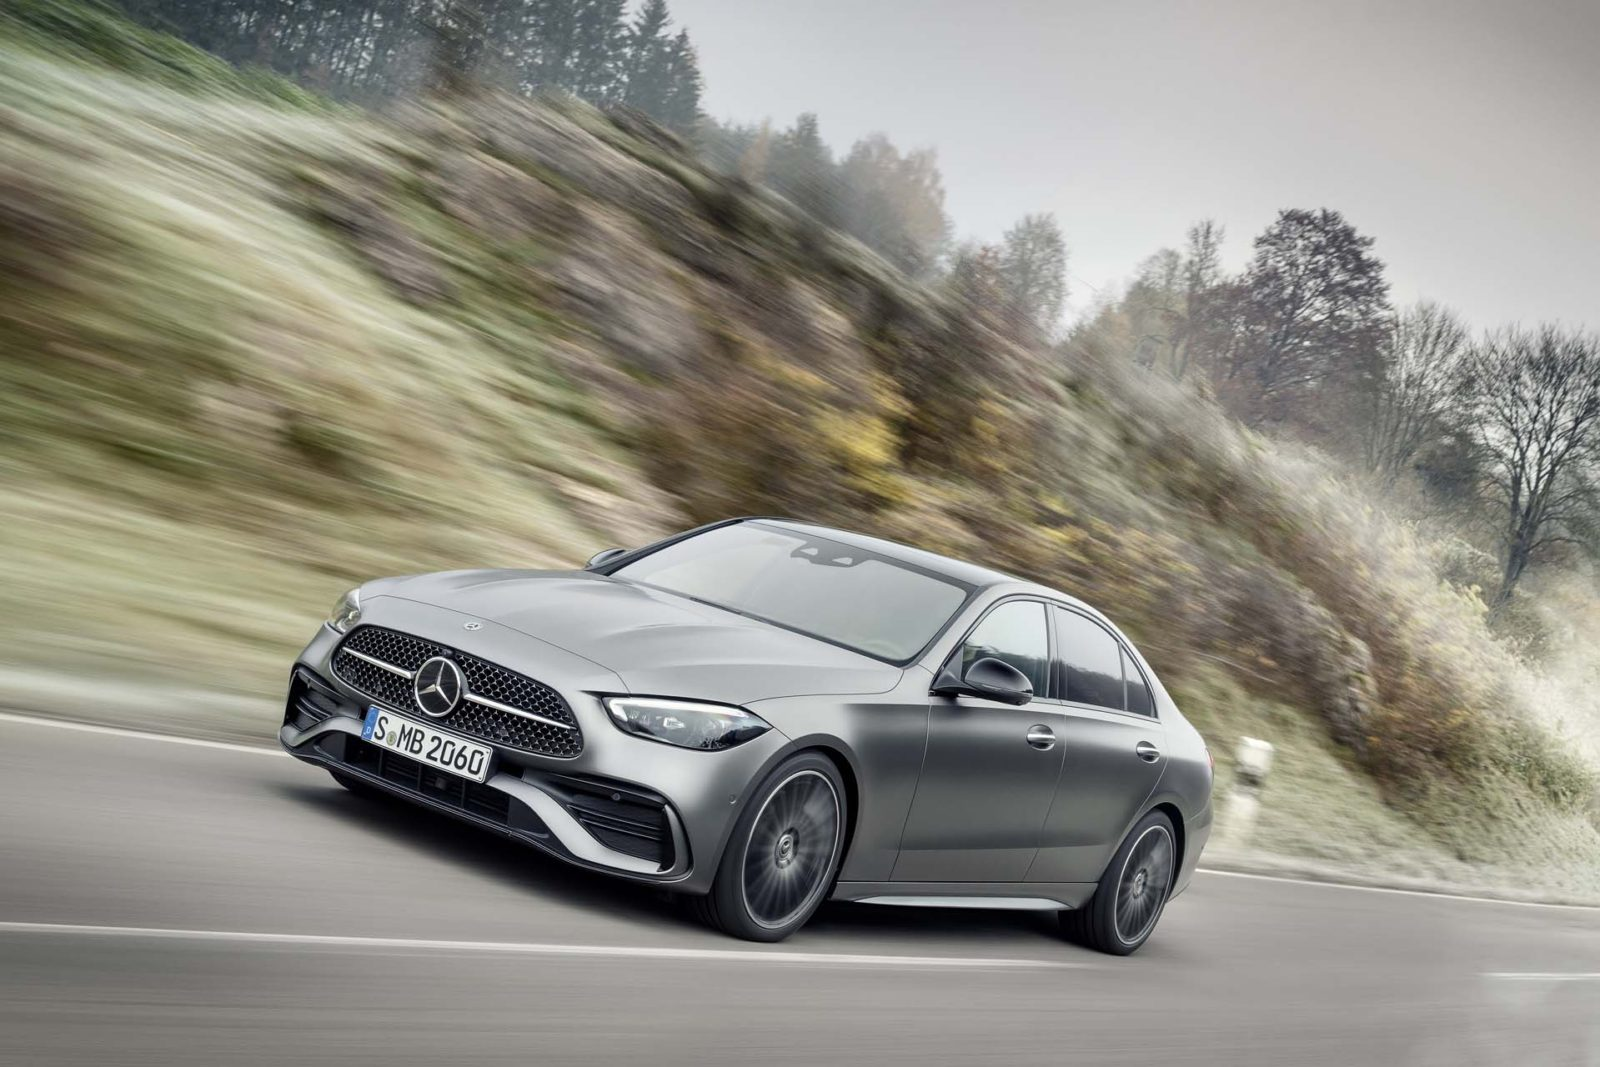 preview:-2022-mercedes-benz-c-class-arrives-with-mild-hybrid-turbo-4,-simplified-trim-levels